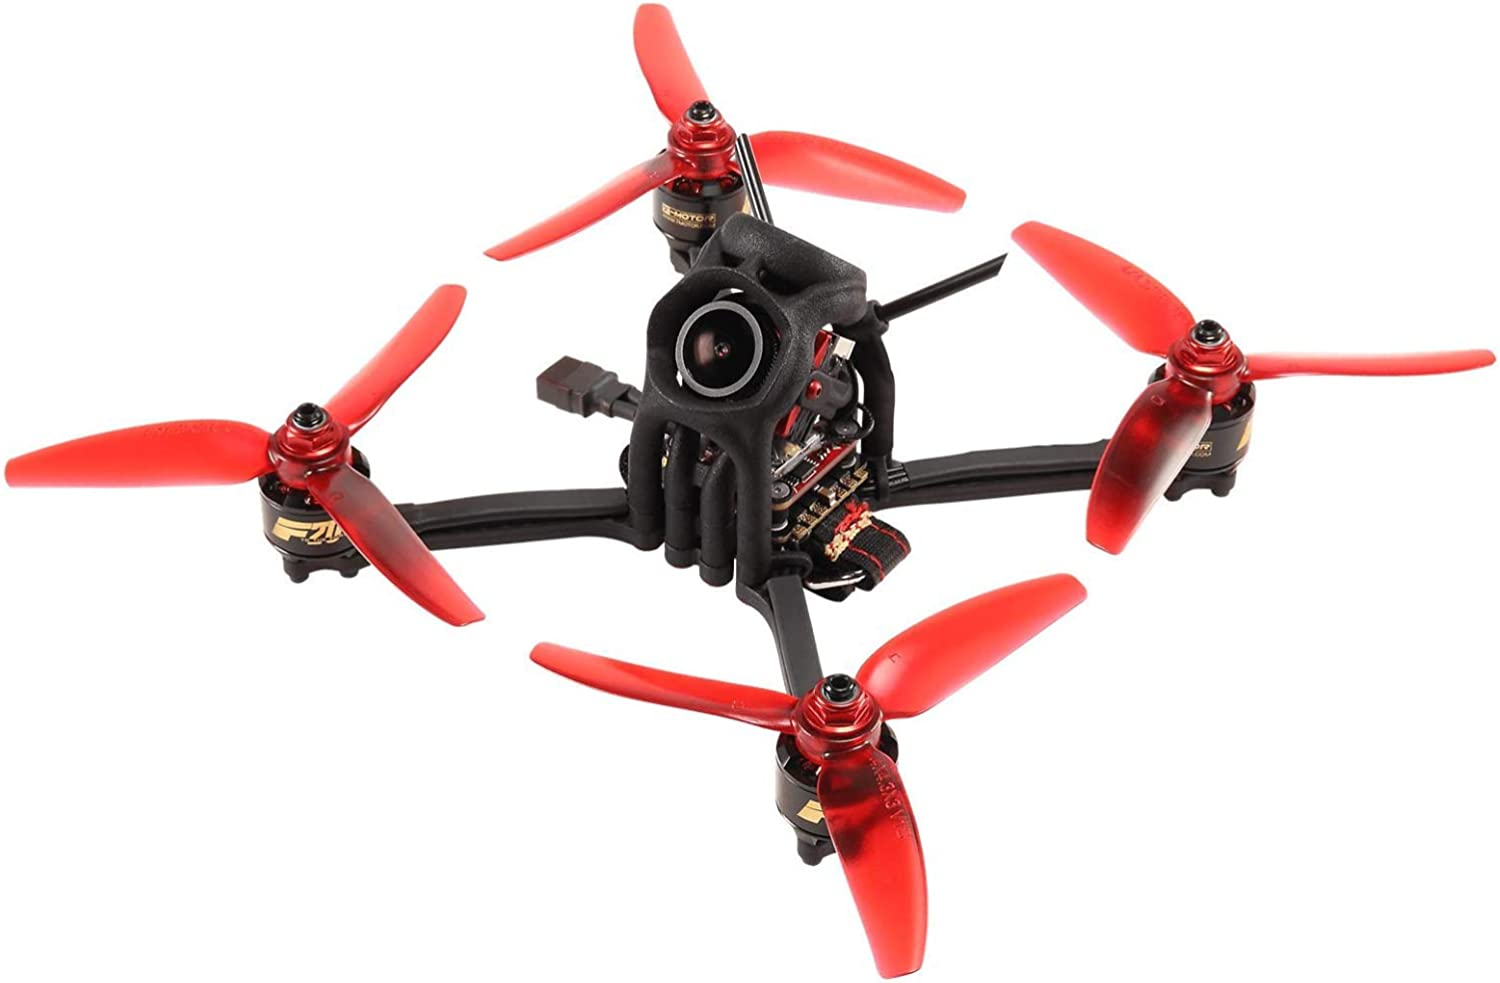 DRONE ART ISO Kit, Nodal Isolation (ISO) System, Small, Light, Strong, Including Carbon Fiber Frame, POD Set, Fastener Set, Lipo Pads, Battery Strap